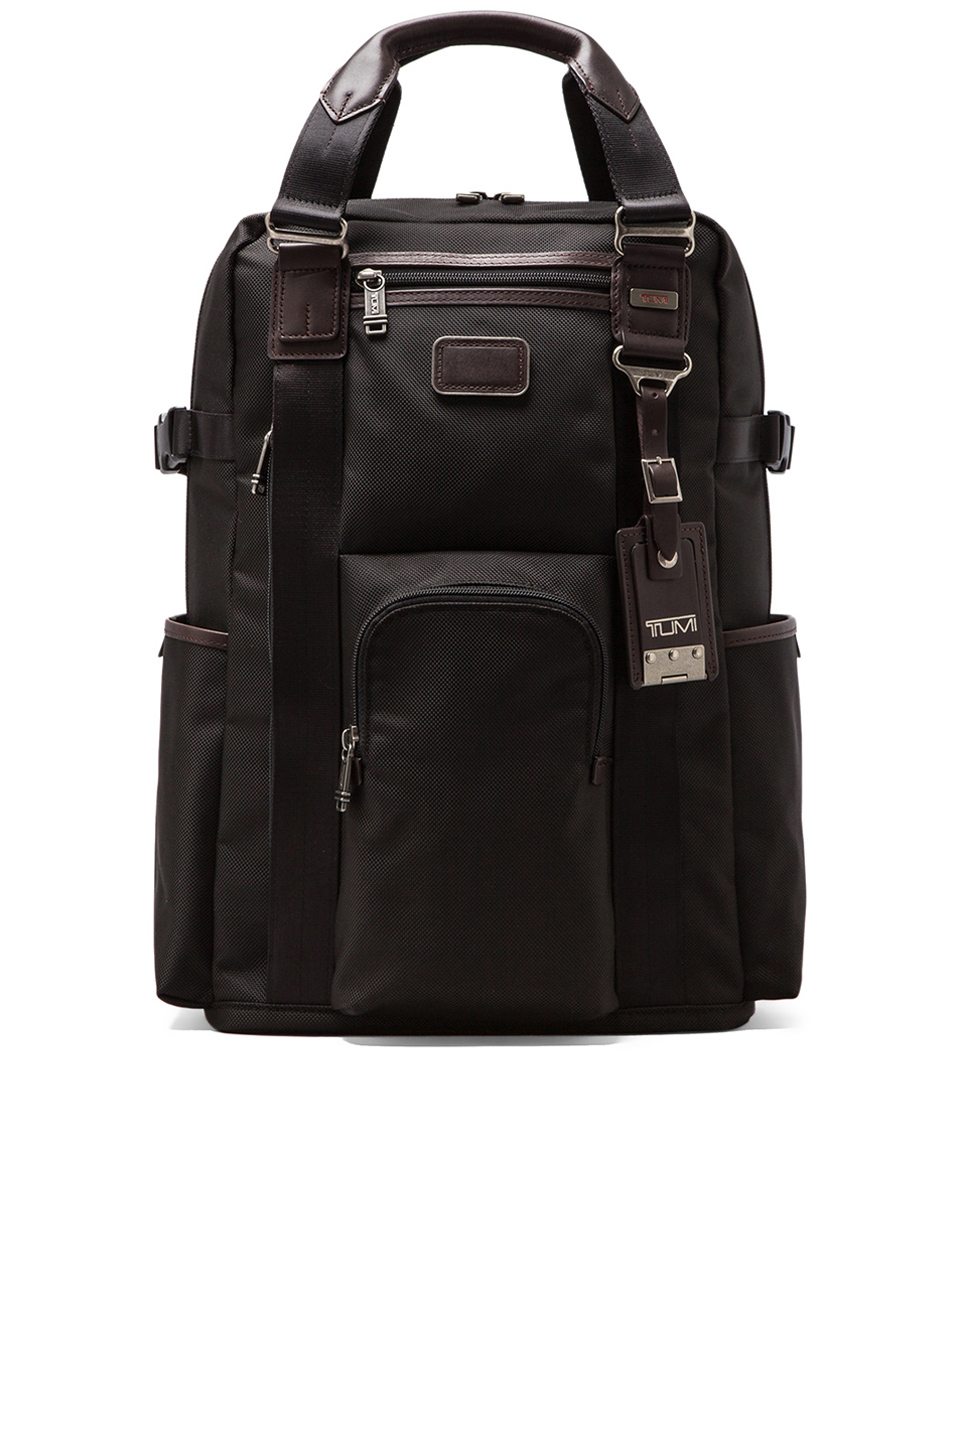 Tumi Alpha Bravo Ballistic Nylon Lejeune Backpack Tote in Hickory